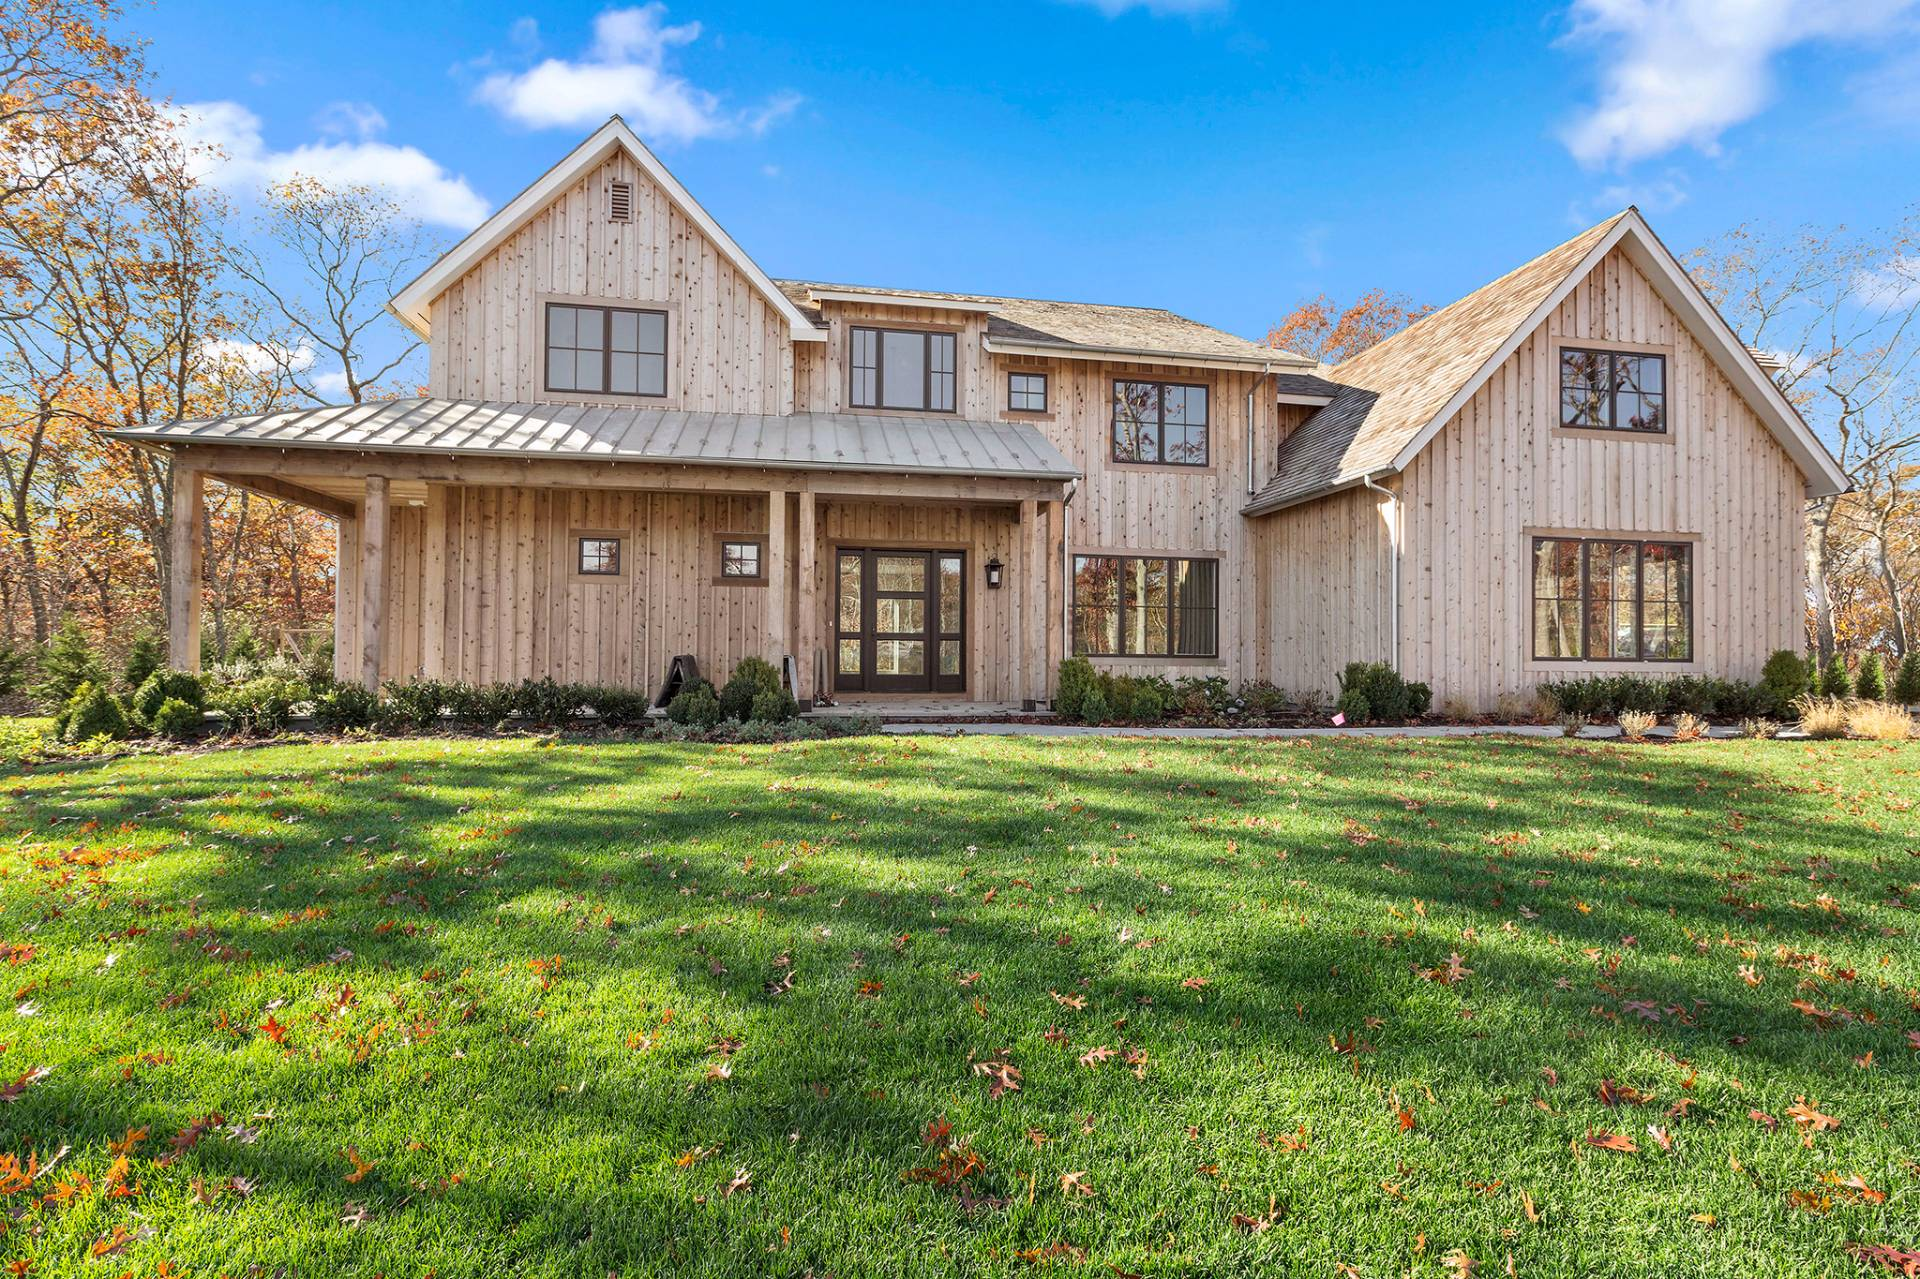 Single Family Home for Sale at Barn & Vine's Sonoma Barn In Bridgehampton 80 Birchwood Lane, Bridgehampton, New York